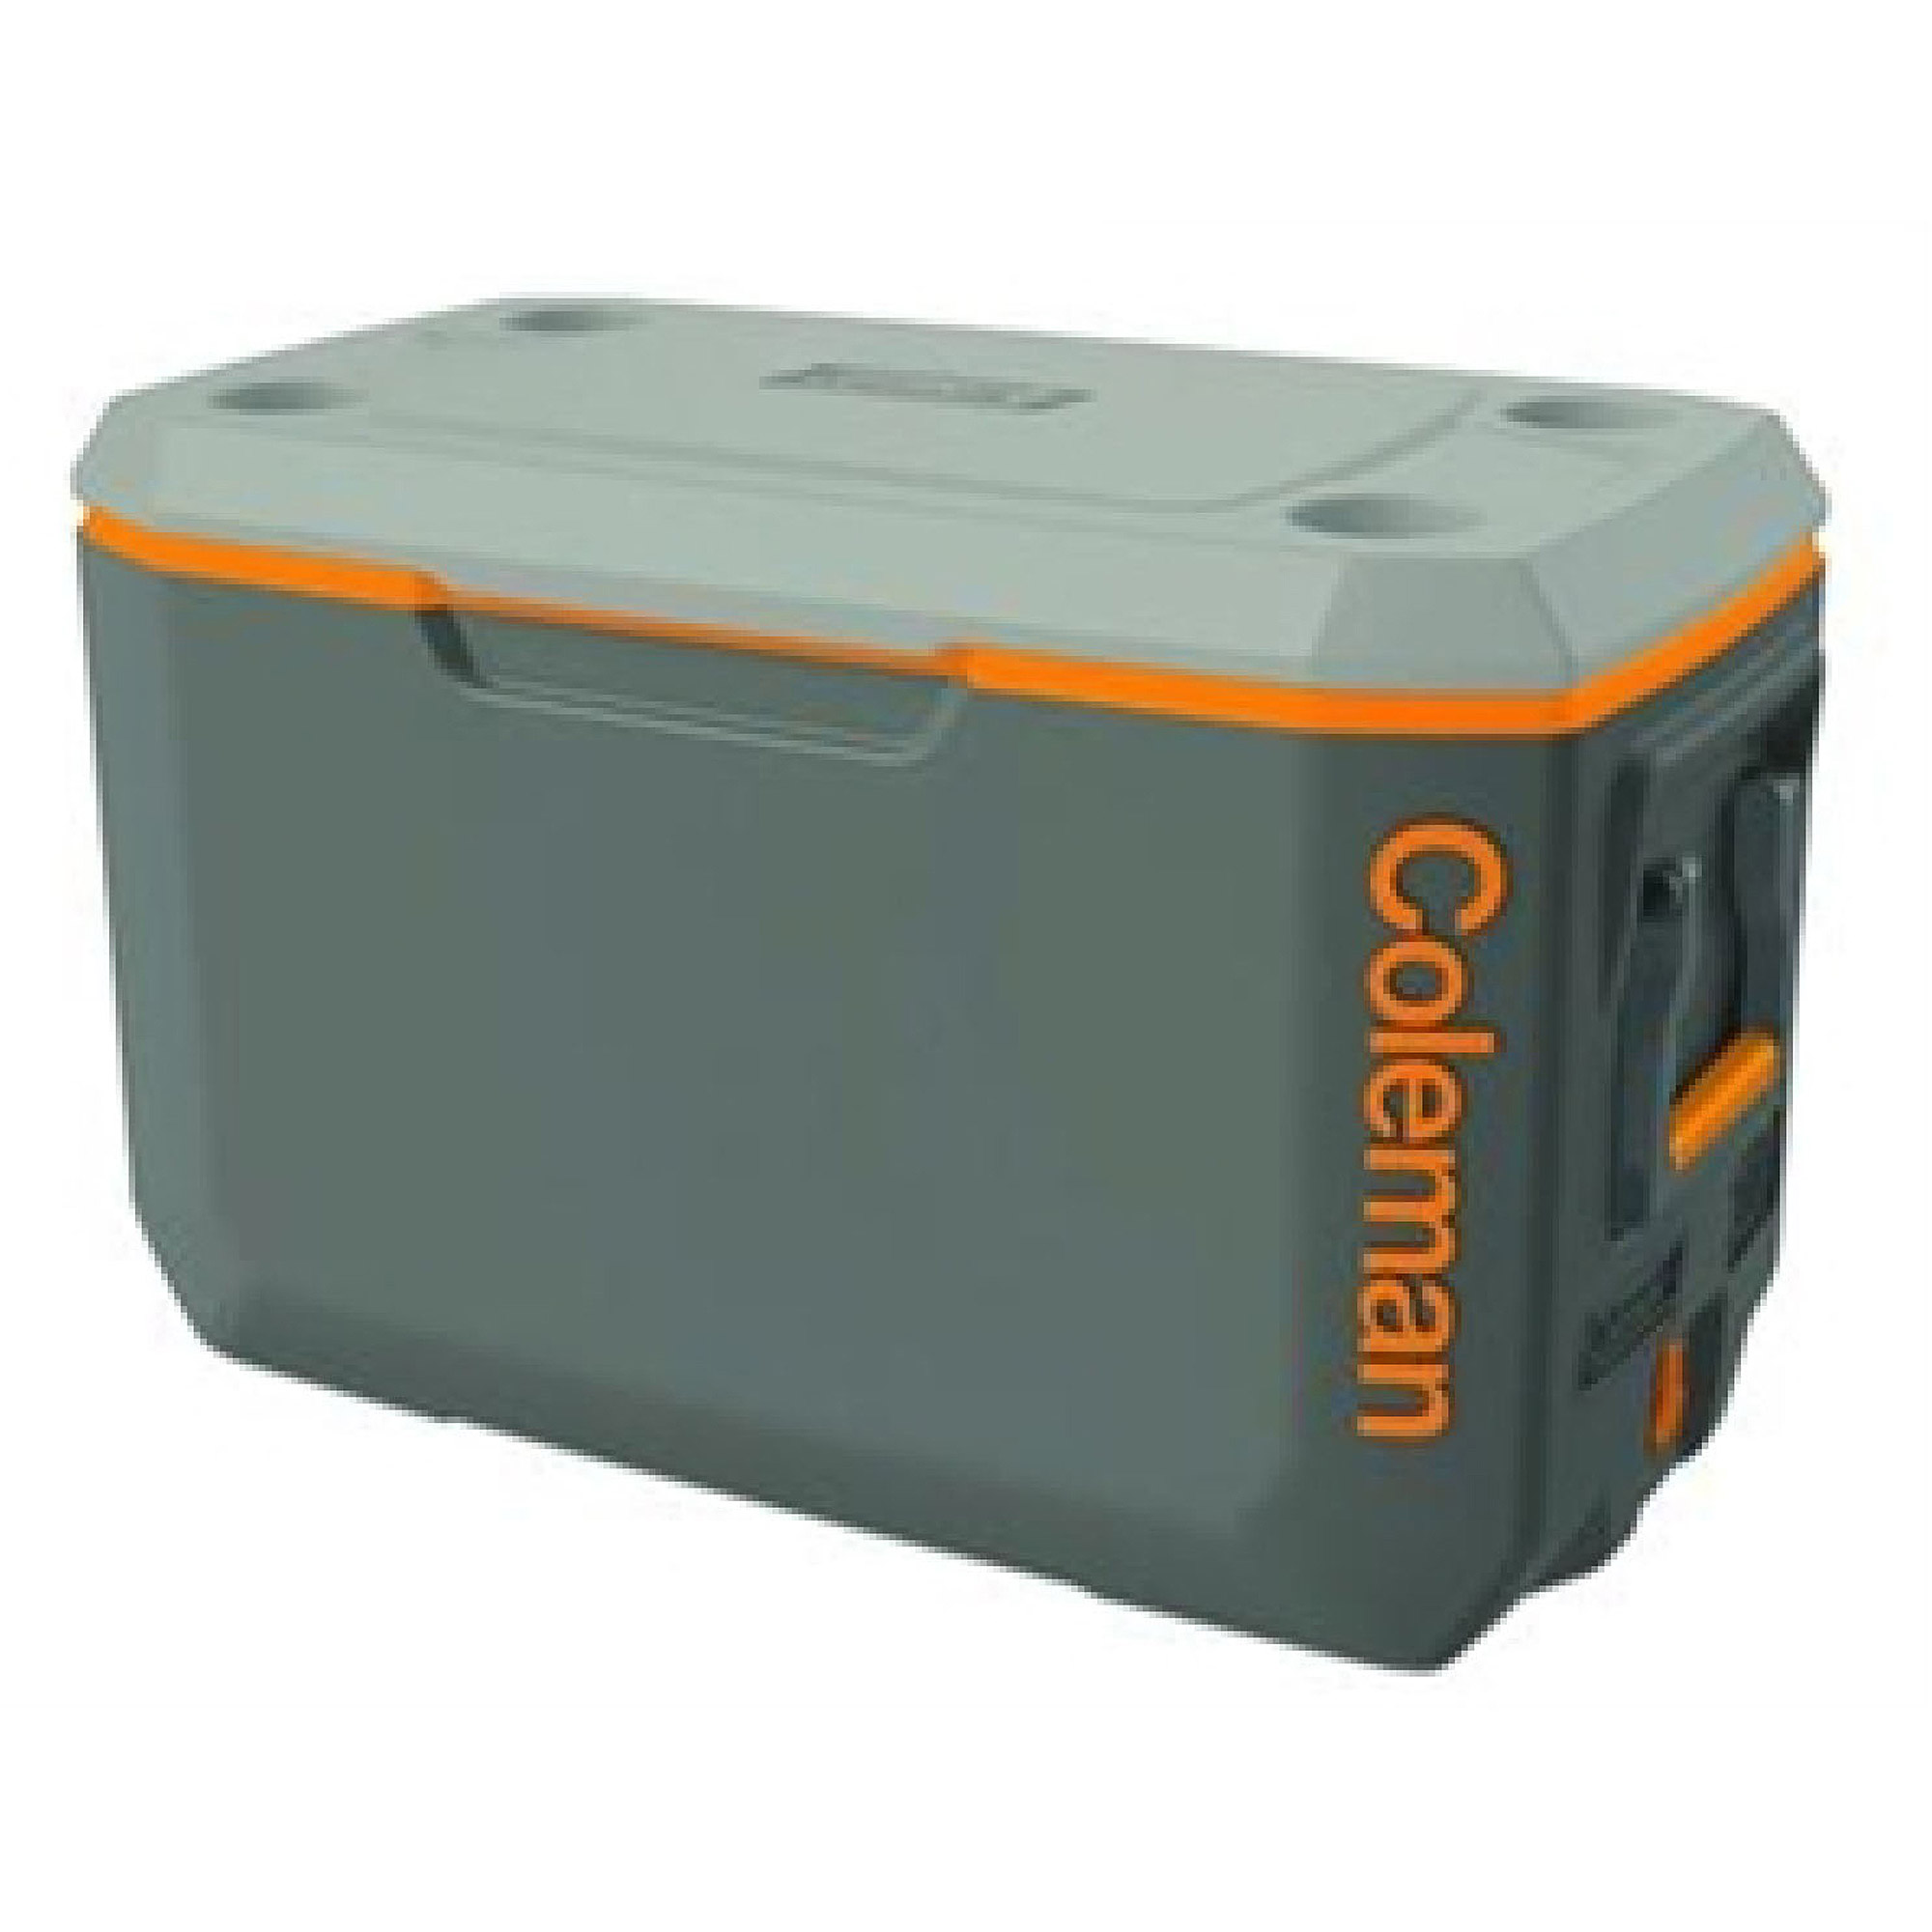 Coleman 70 Qrt Xtreme Dark Gry/Orng/Lt Gry Cooler